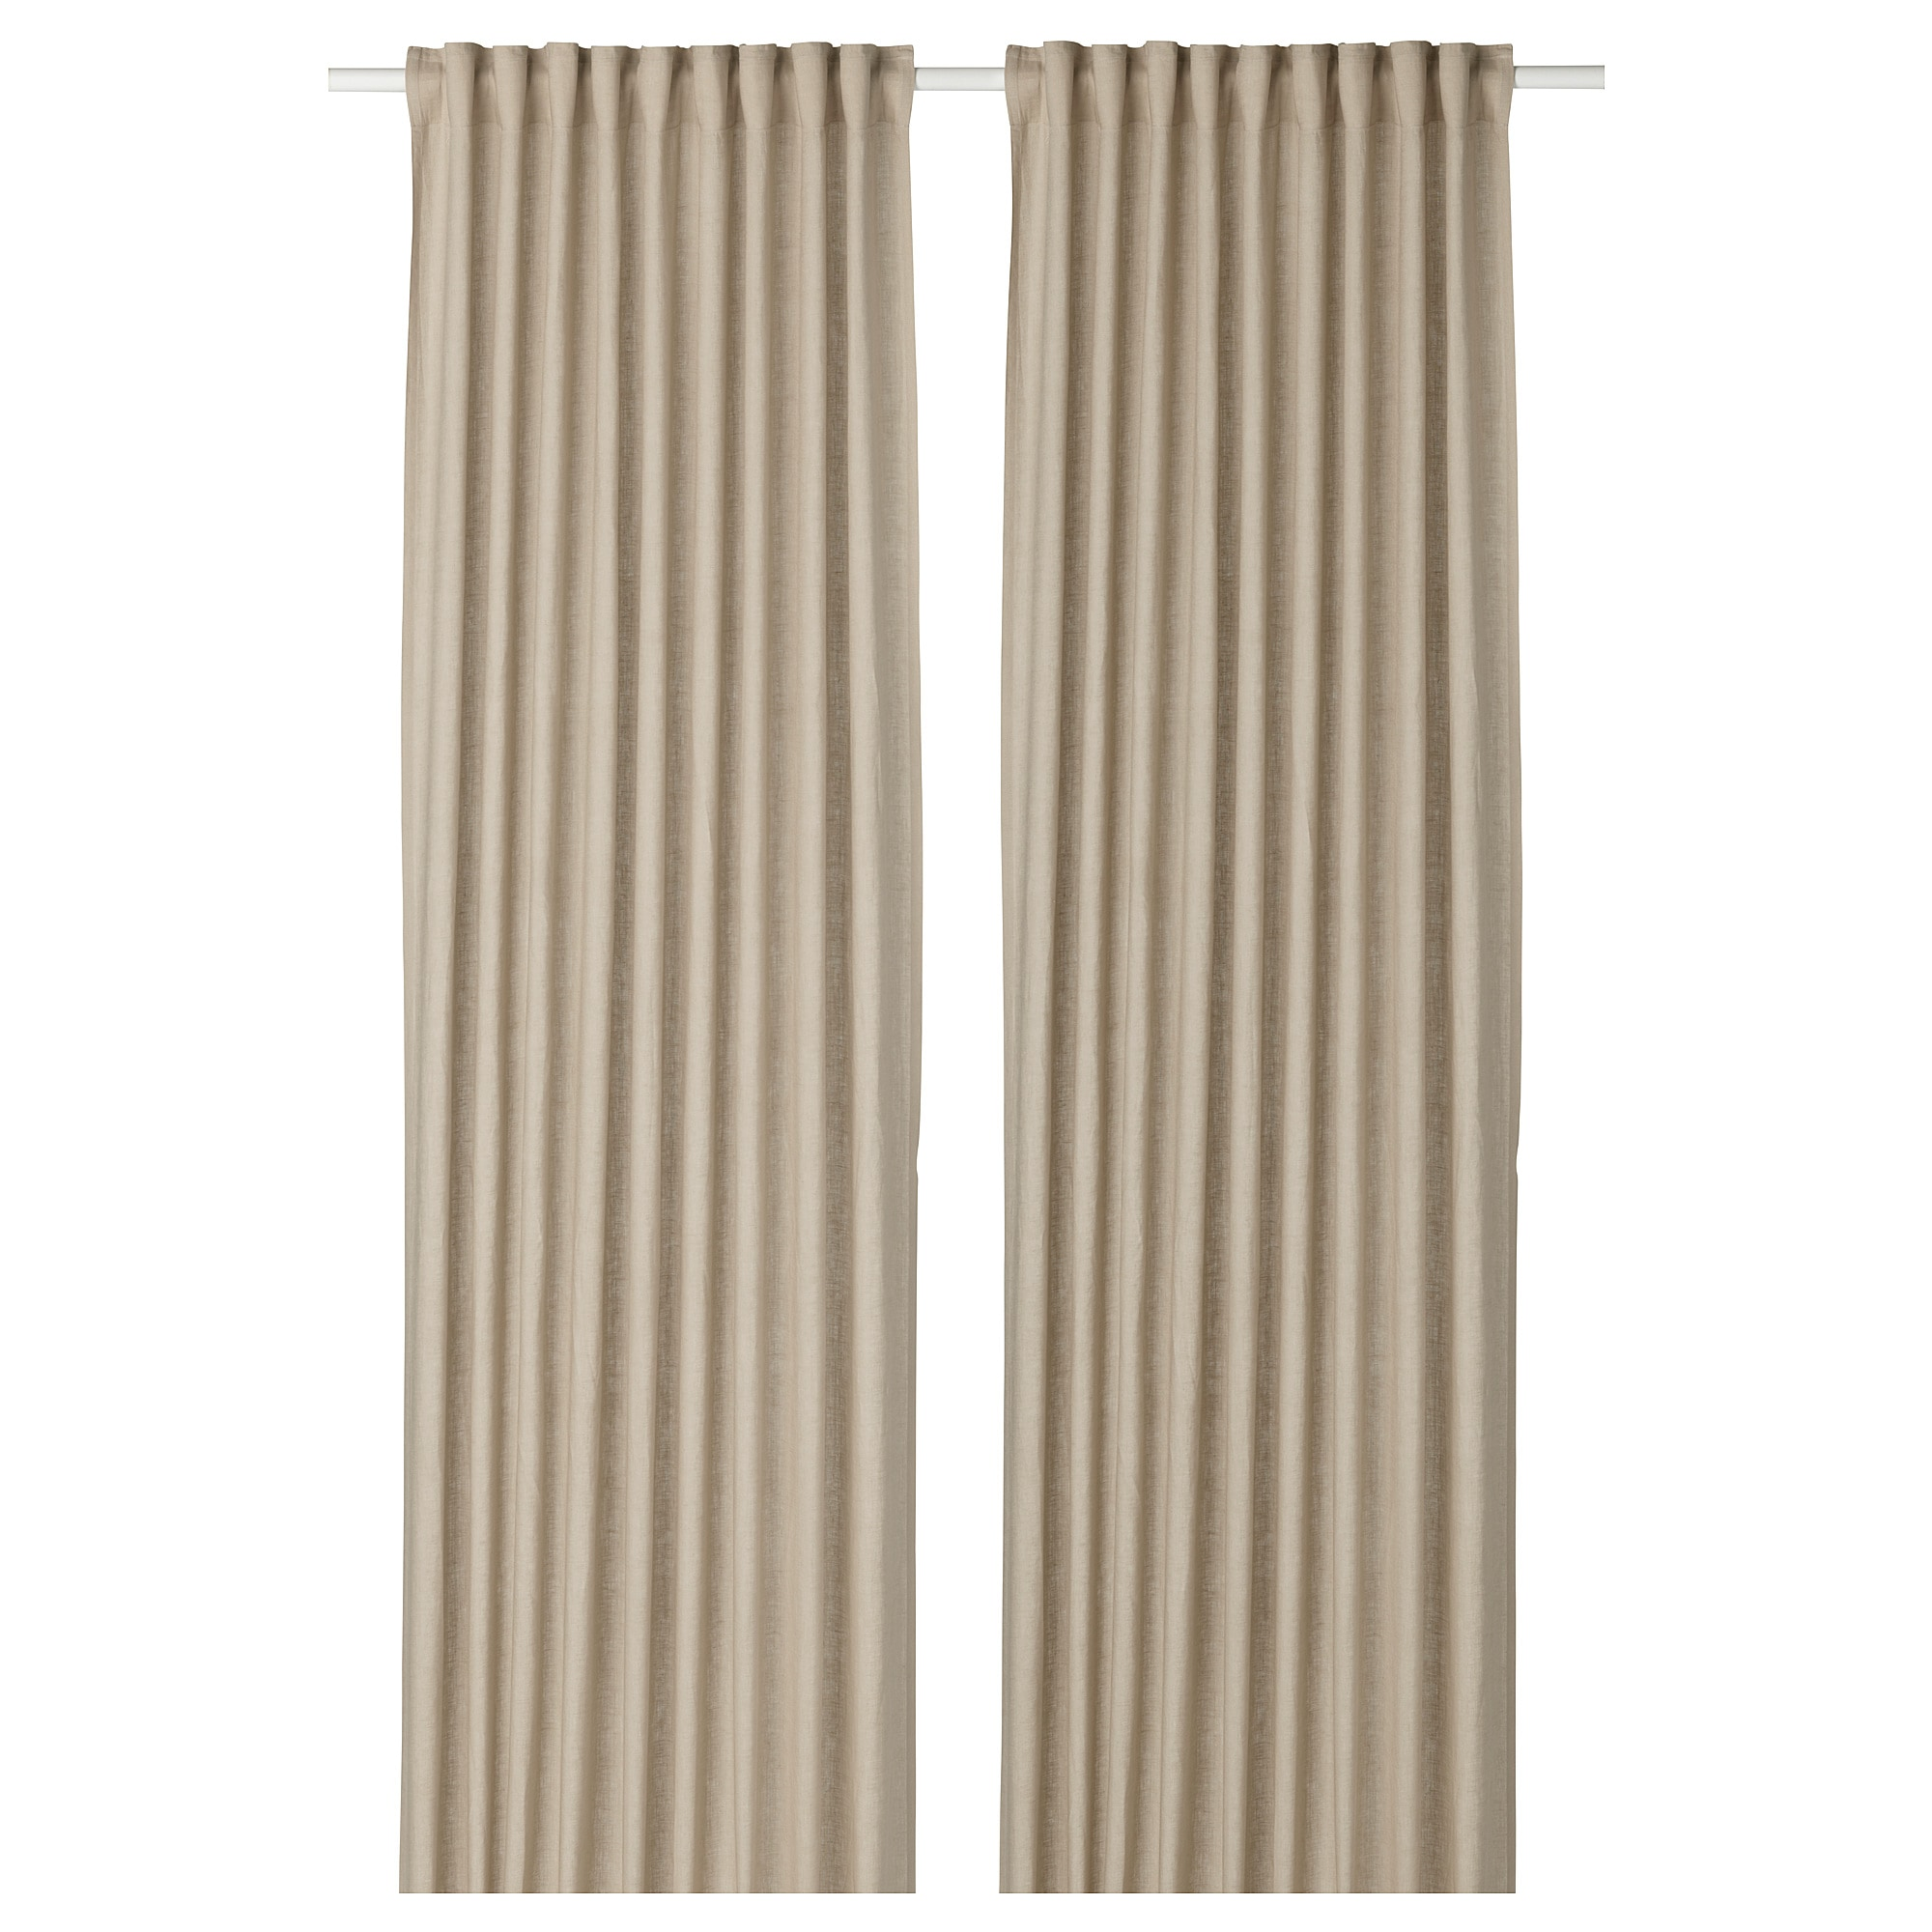 AINA Curtains 1 Pair Beige